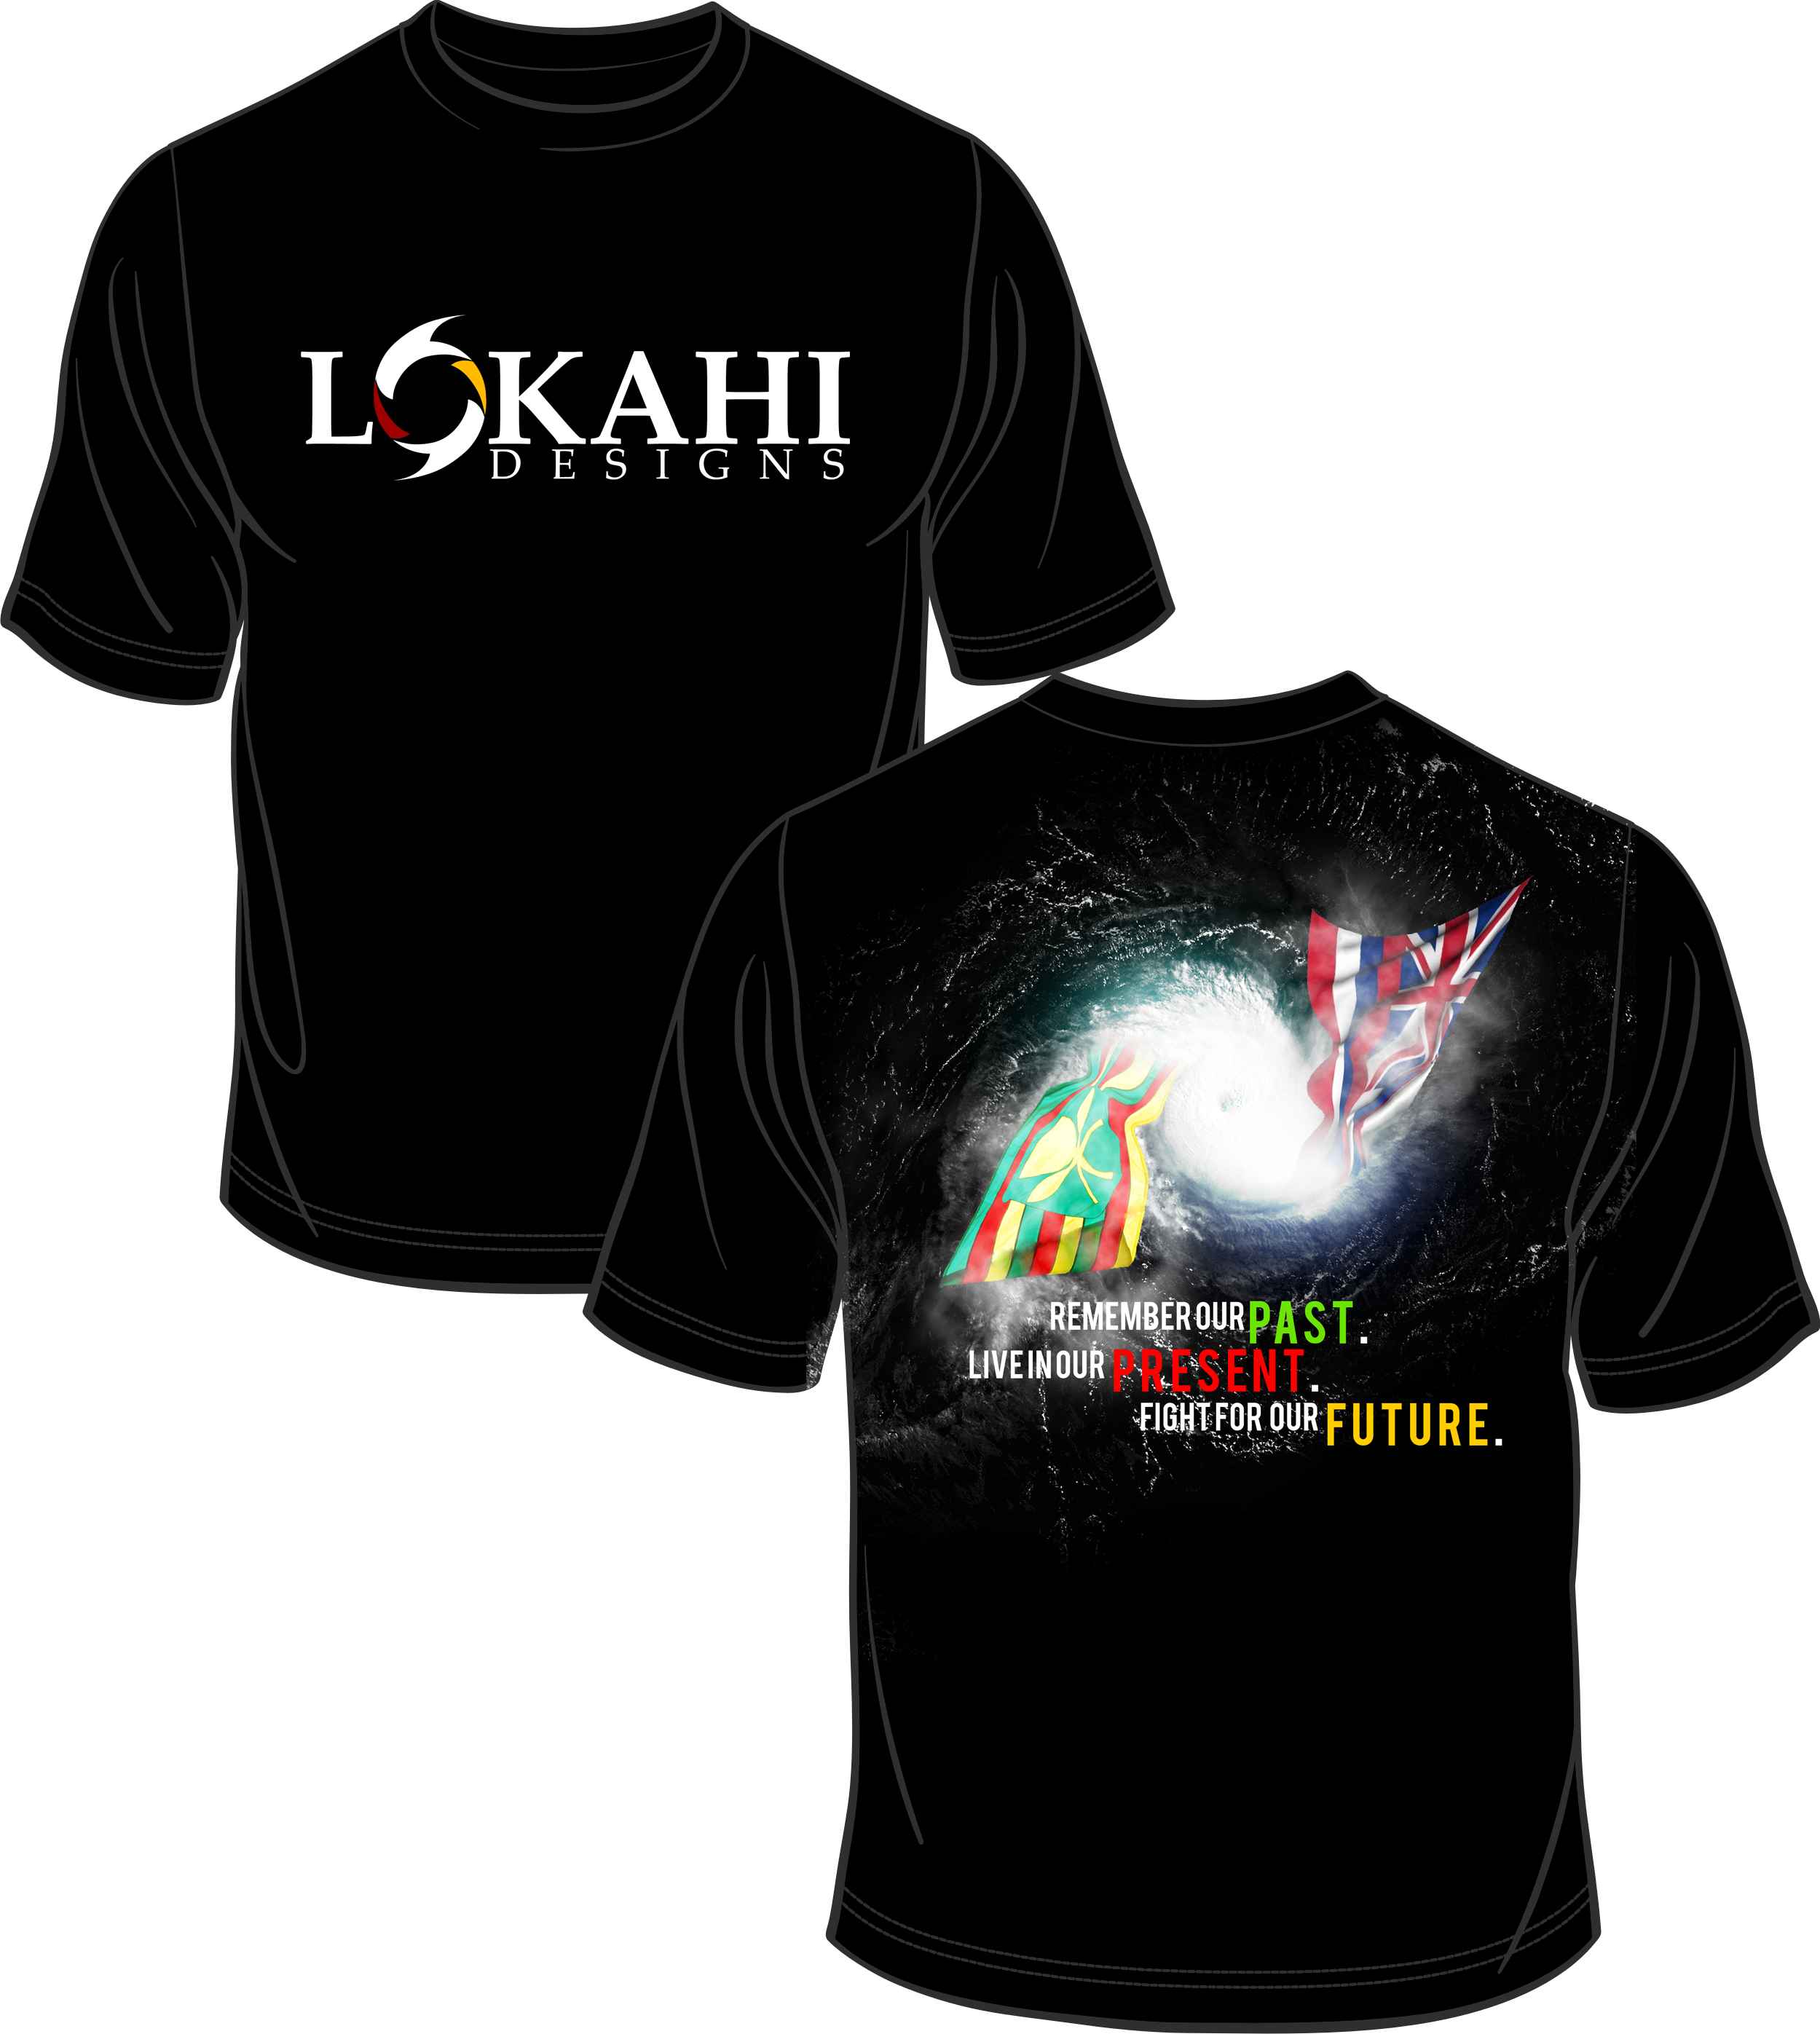 Clothing Design by Kenneth Joel - Entry No. 3 in the Clothing Design Contest Creative Clothing Design for LOKAHI designs.